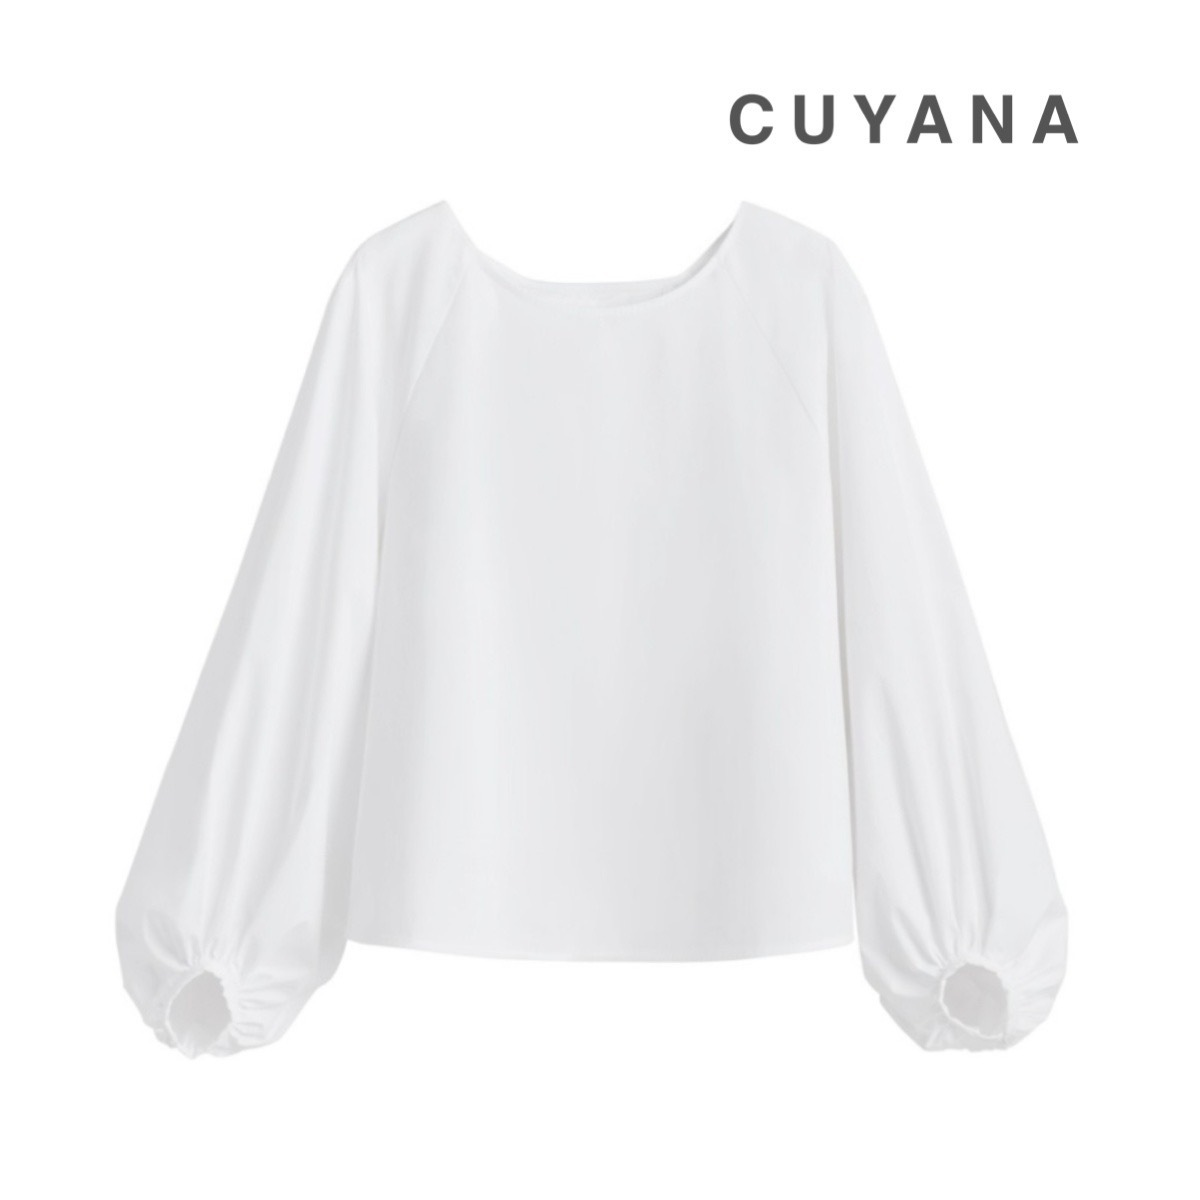 shop cuyana clothing